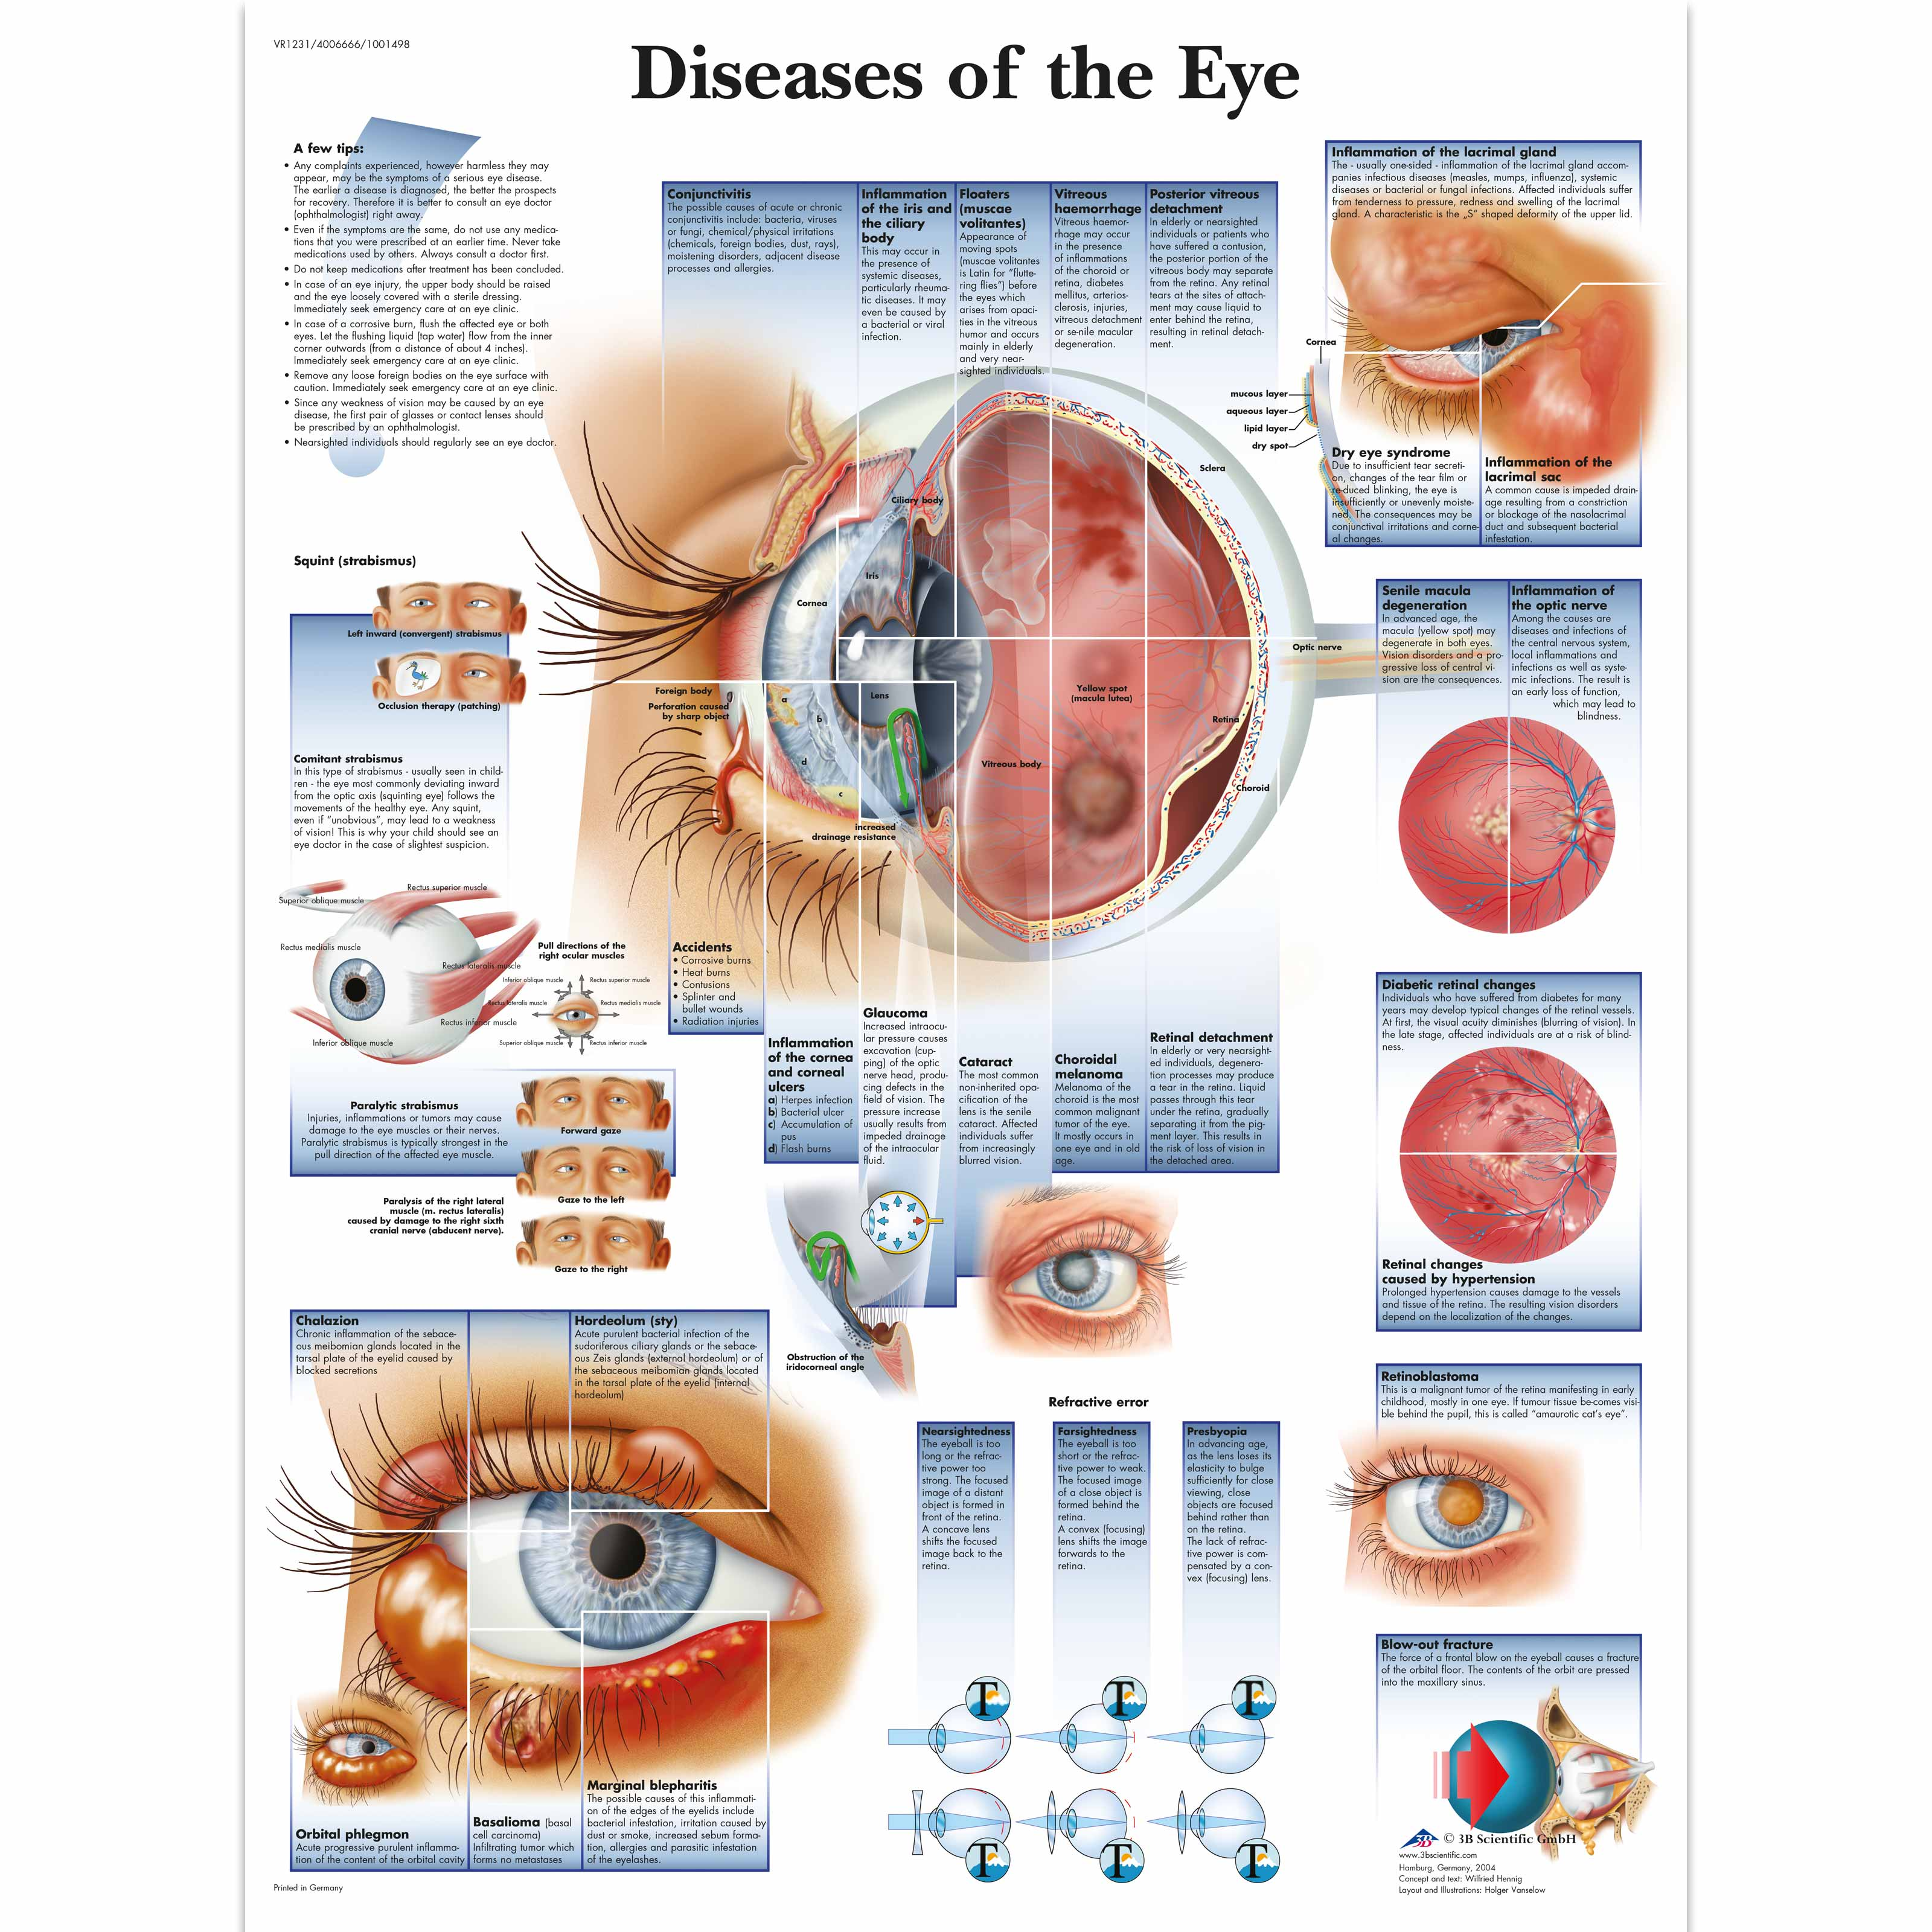 Diseases of the eye chart 4006666 vr1231uu ophthalmology 3b diseases of the eye chart nvjuhfo Image collections